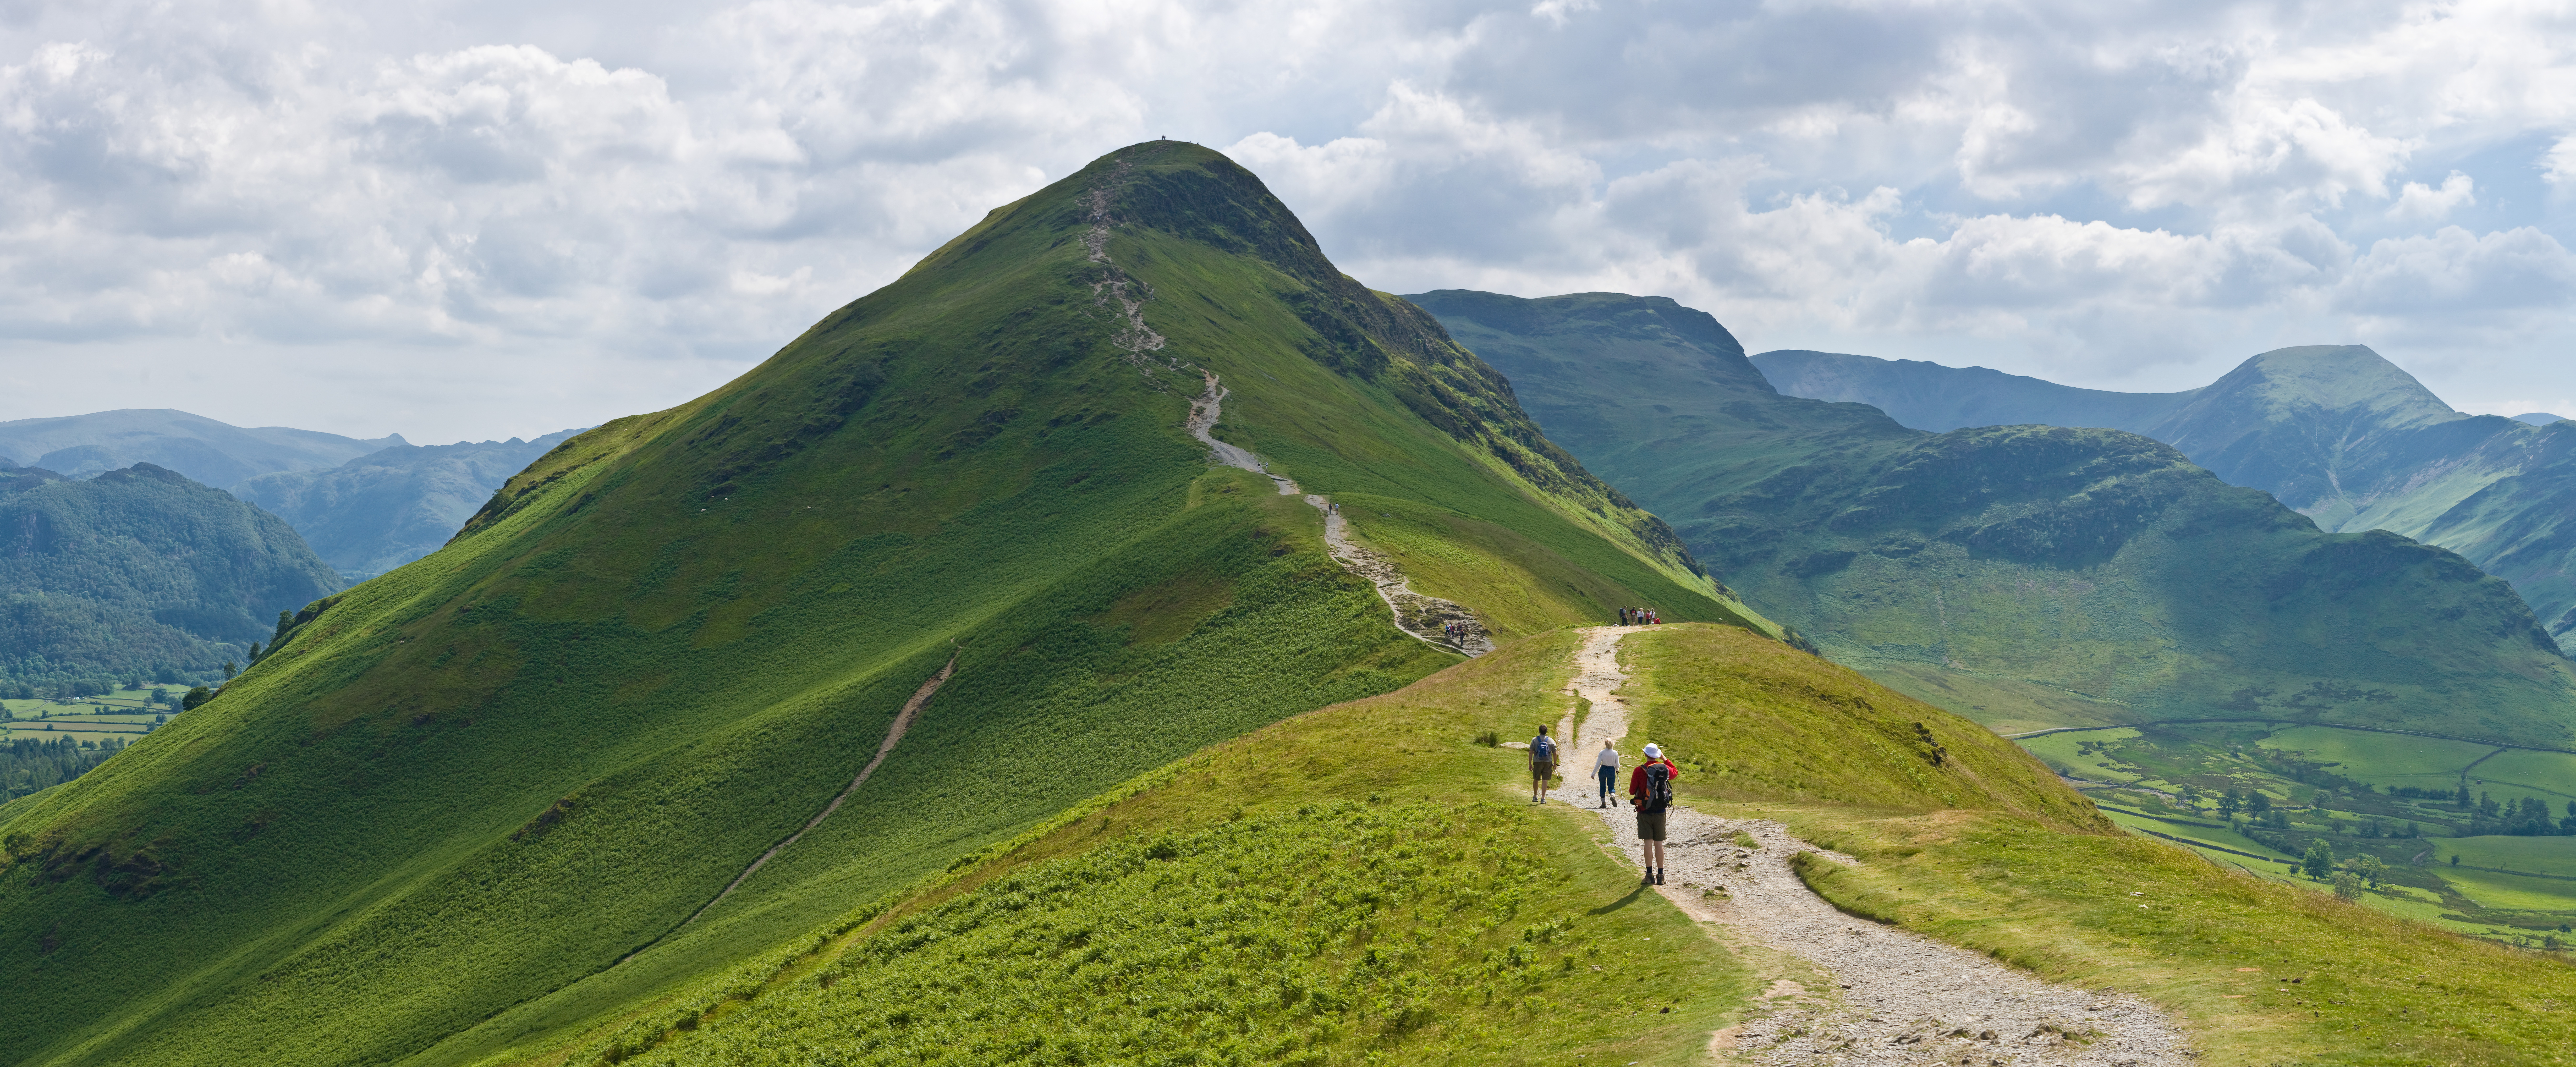 lake district View deals from au$72 per night, see photos and read reviews for the best lake district hotels from travellers like you - then compare today's lowest prices from up to 200 sites on.